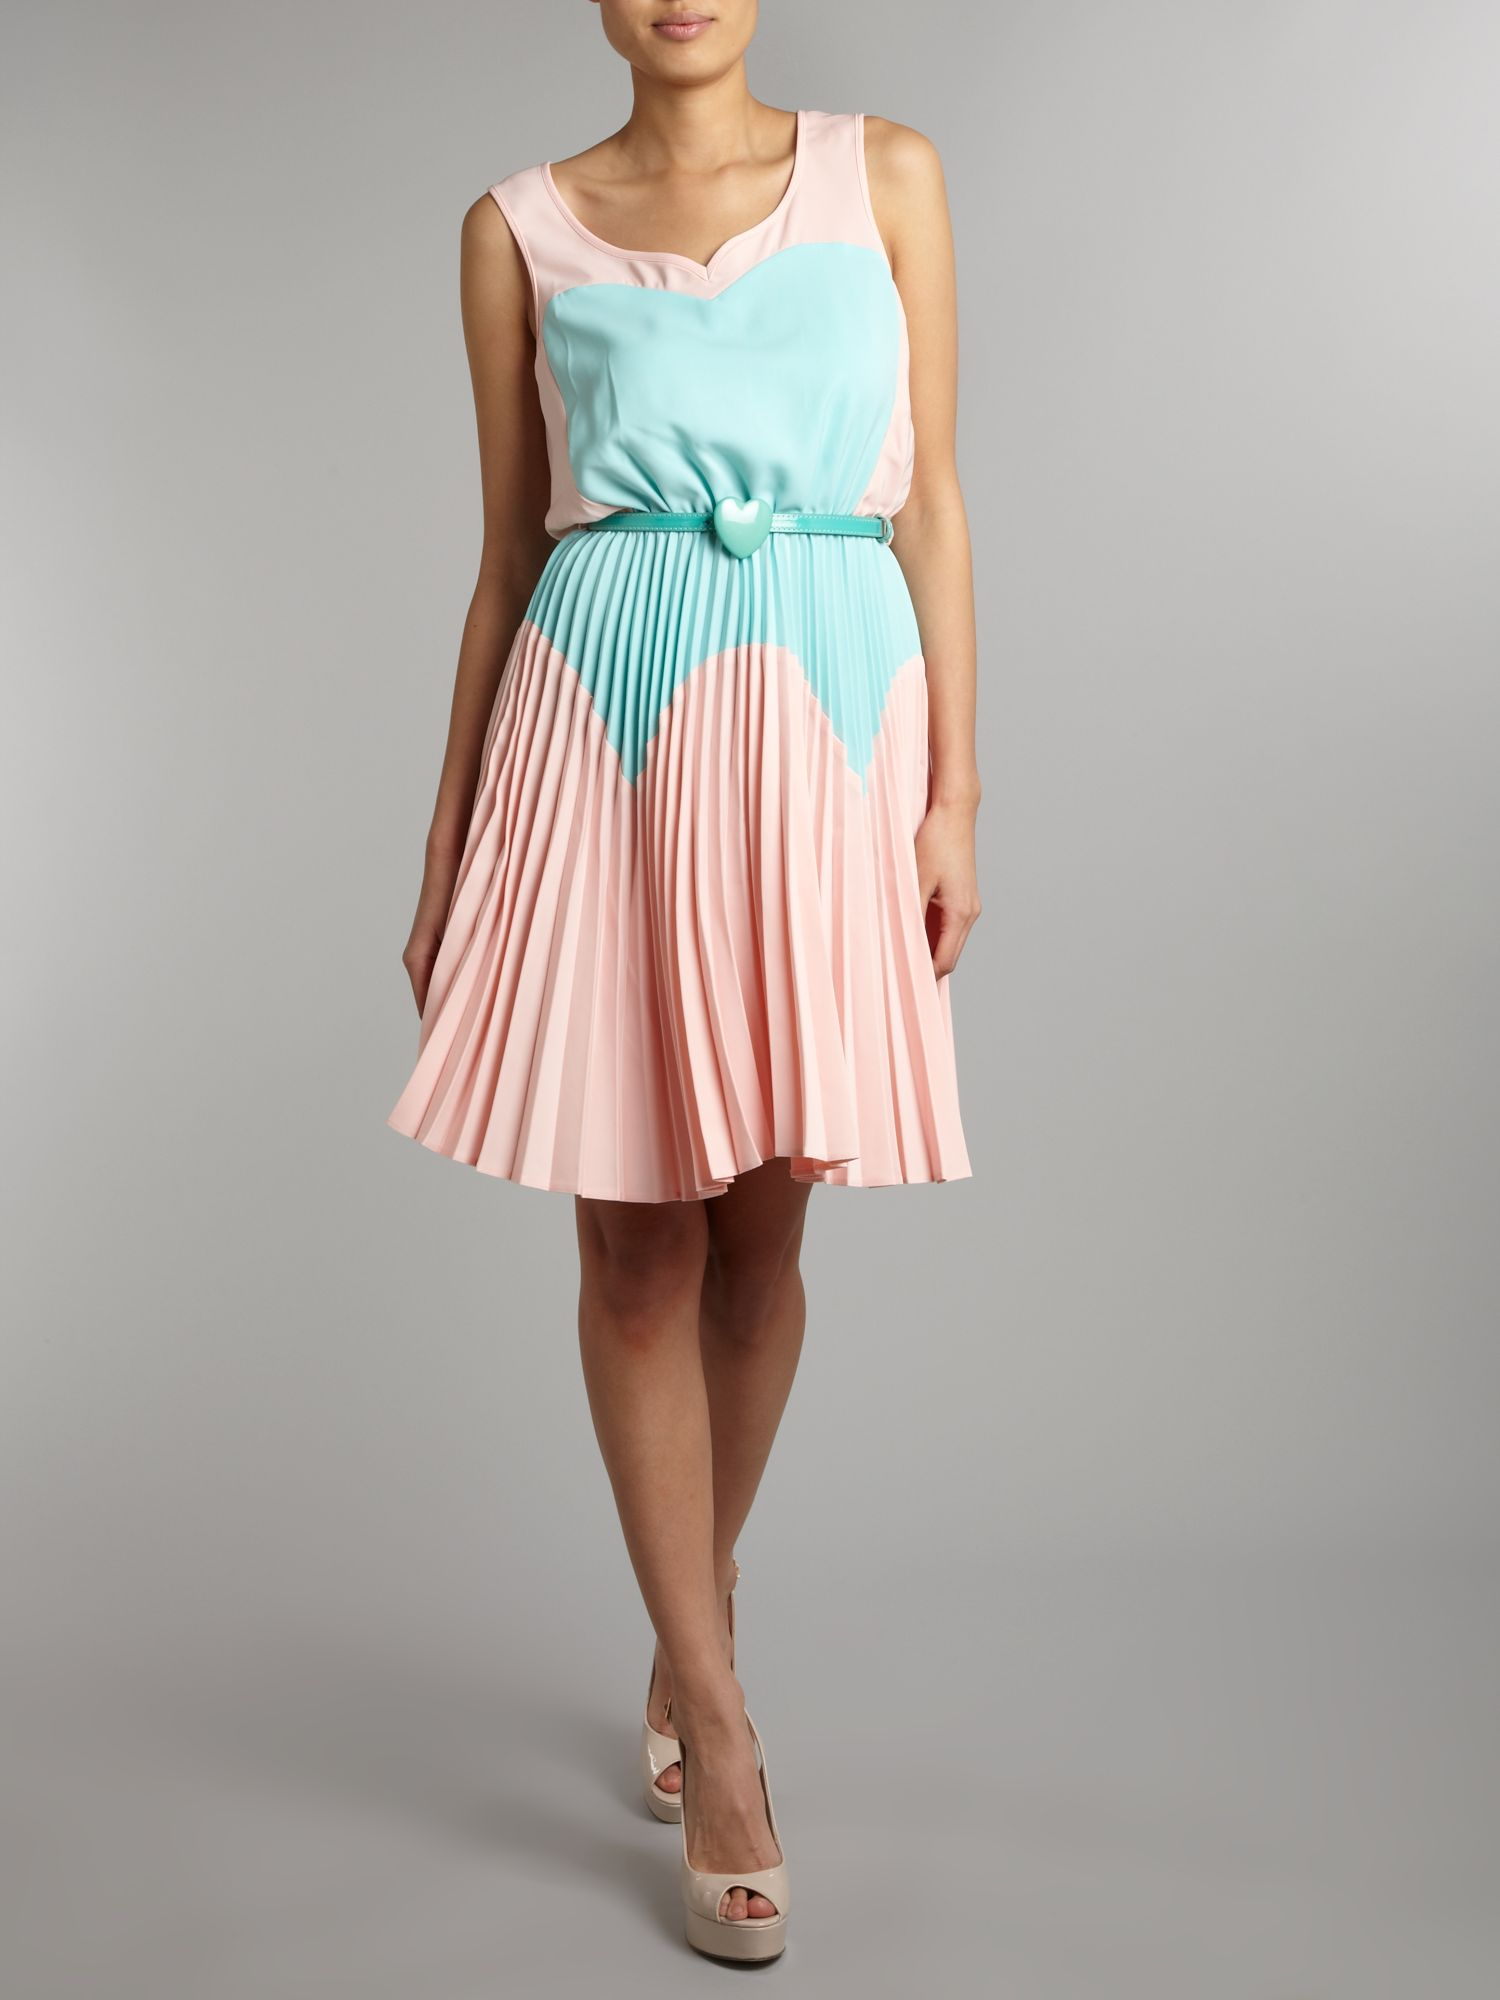 Almari heart pleat contrast dress